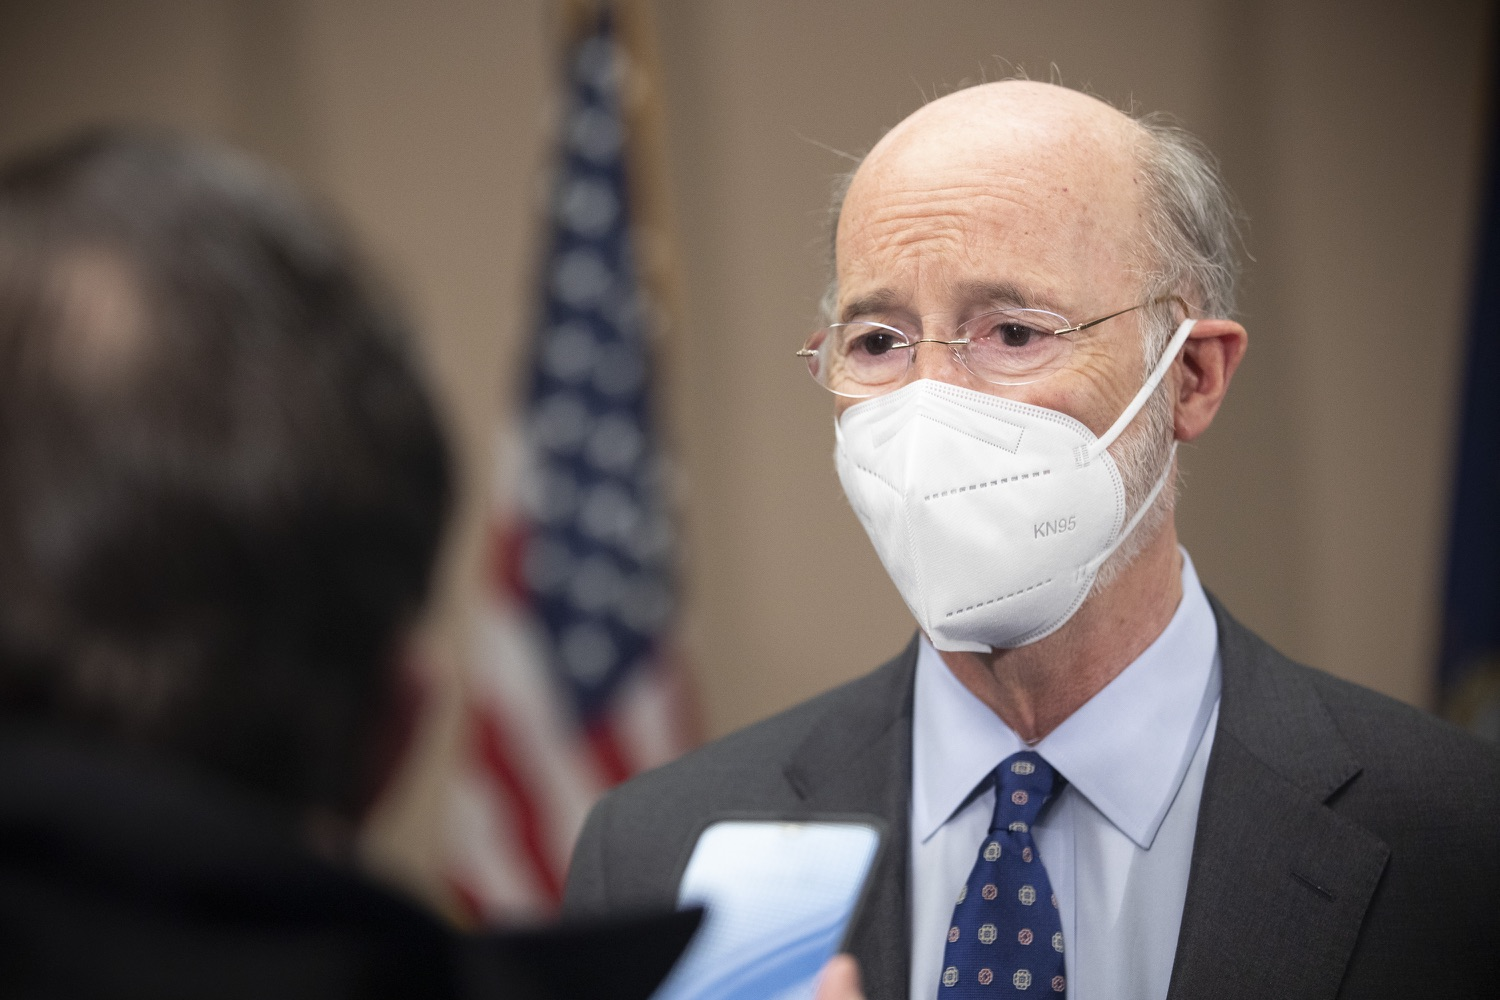 """<a href=""""https://filesource.wostreaming.net/commonwealthofpa/photo/18646_gov_vaccines_dz_018.jpg"""" target=""""_blank"""">⇣Download Photo<br></a>Pennsylvania Governor Tom Wolf speaking with the press.  After vaccinating more than 112,500 teachers and school staff in only about three weeks, Governor Tom Wolf visited Luzerne County today to announce the special vaccination initiative is a success and was completed ahead of schedule. The accomplishment is an important step to help more students and teachers safely return to classrooms across the state.  Kingston, PA - April 2, 2021"""